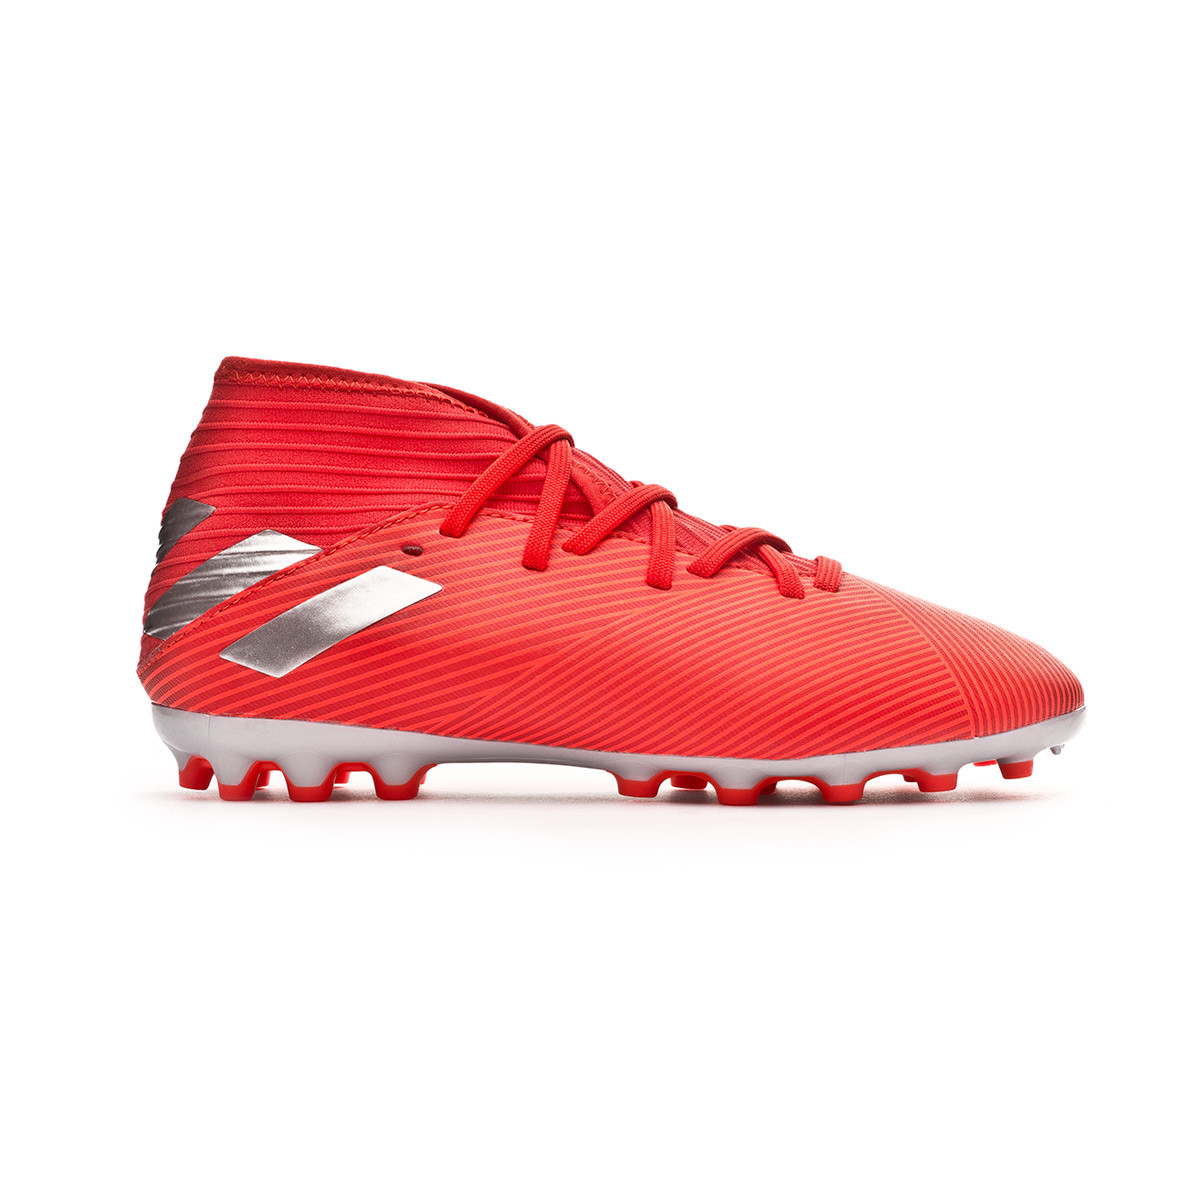 cb2f1c980be Football Boots adidas Nemeziz 19.3 AG Niño Active red-Silver metallic-Solar  red - Football store Fútbol Emotion